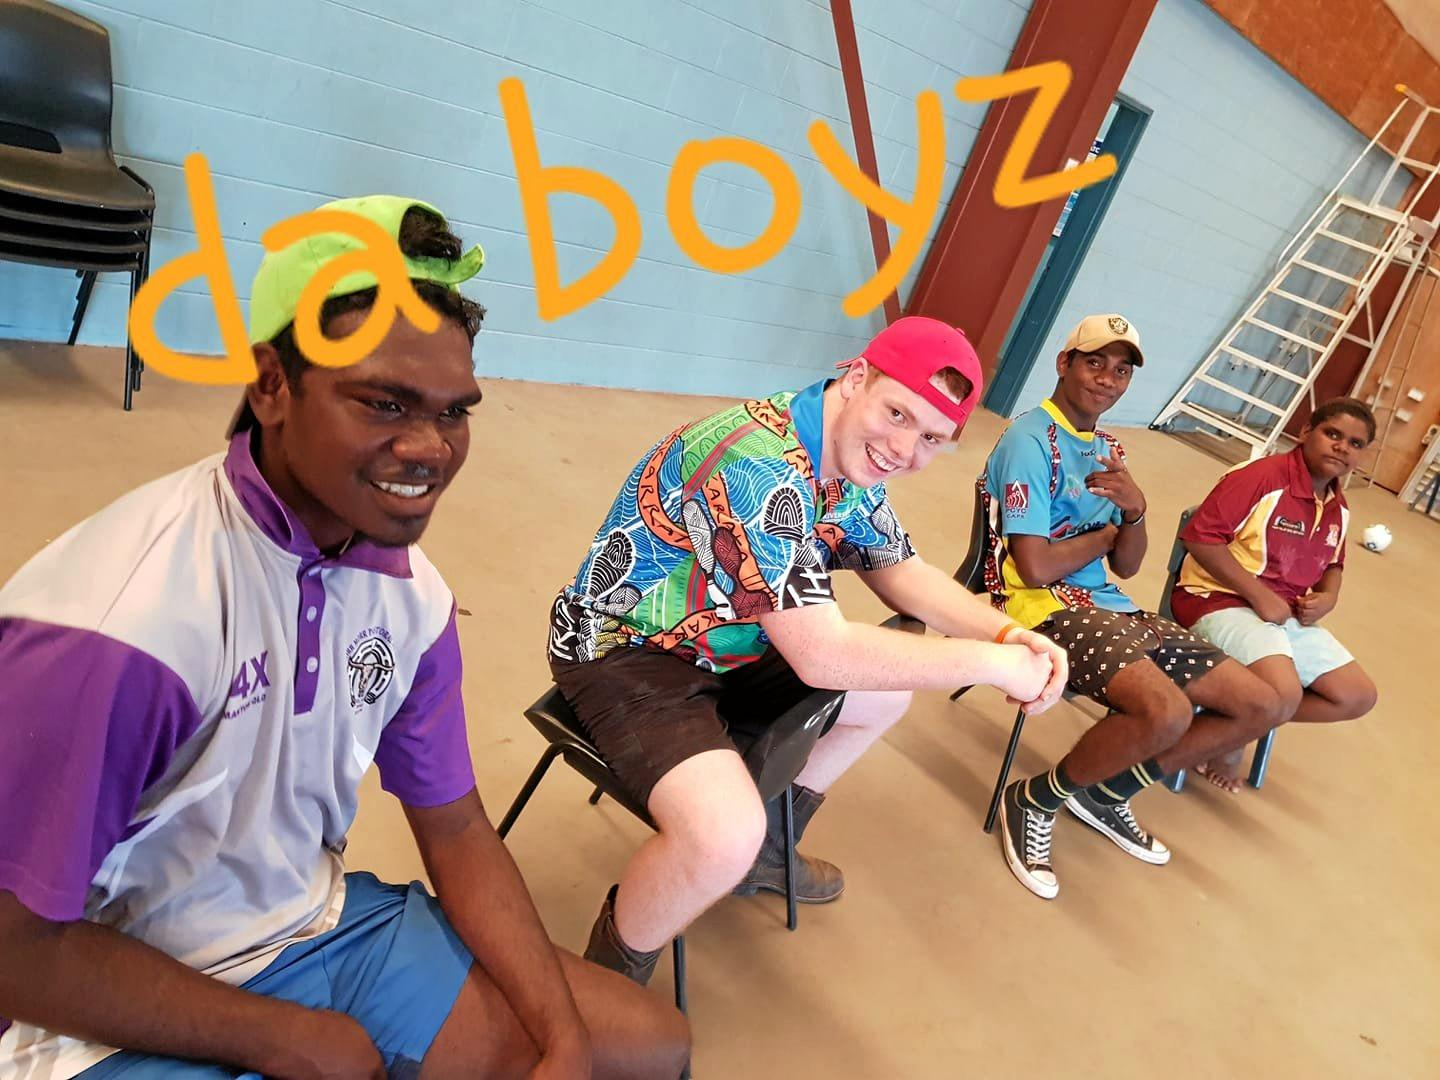 Riverside Christian College student Ryan Harrold is chillin' with da boyz and hanging out at the Normanton Sports Centre where they will join in activities including footy, basketball, some form of netball, and bubble wands.